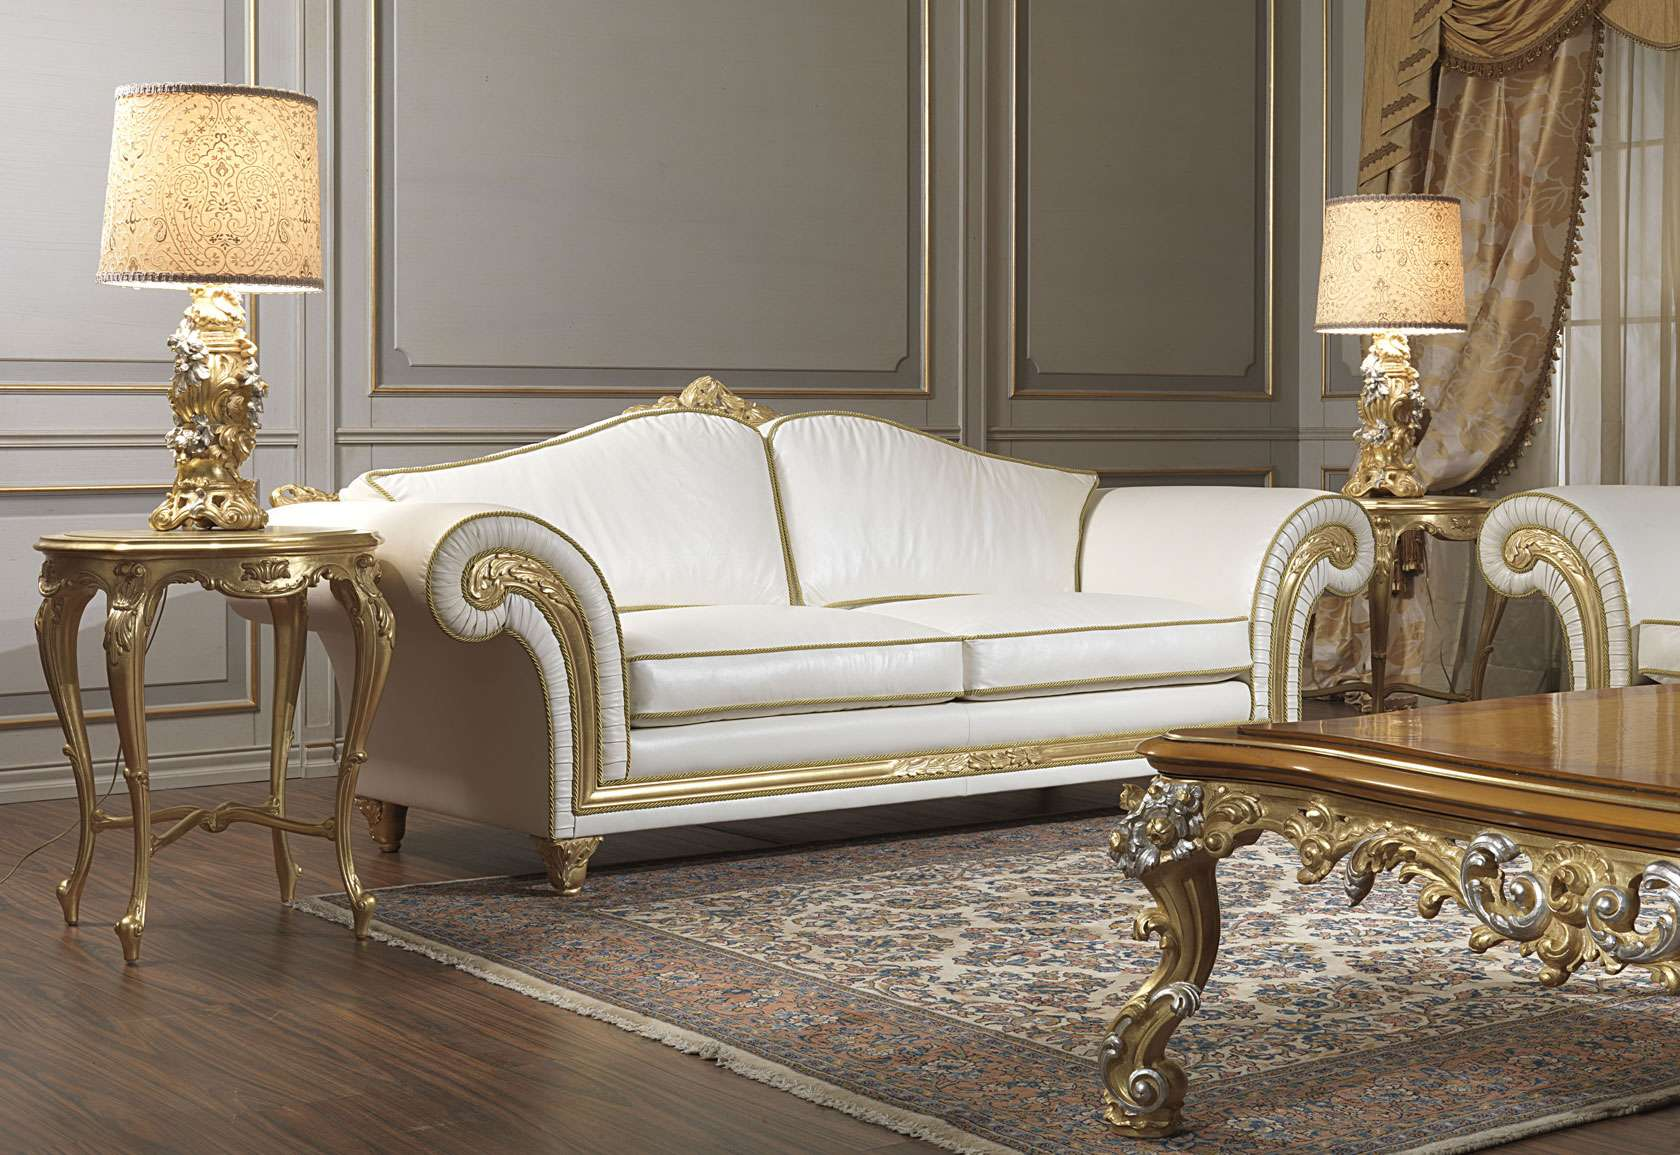 Lovely Classic Sofa Imperial In White Leather